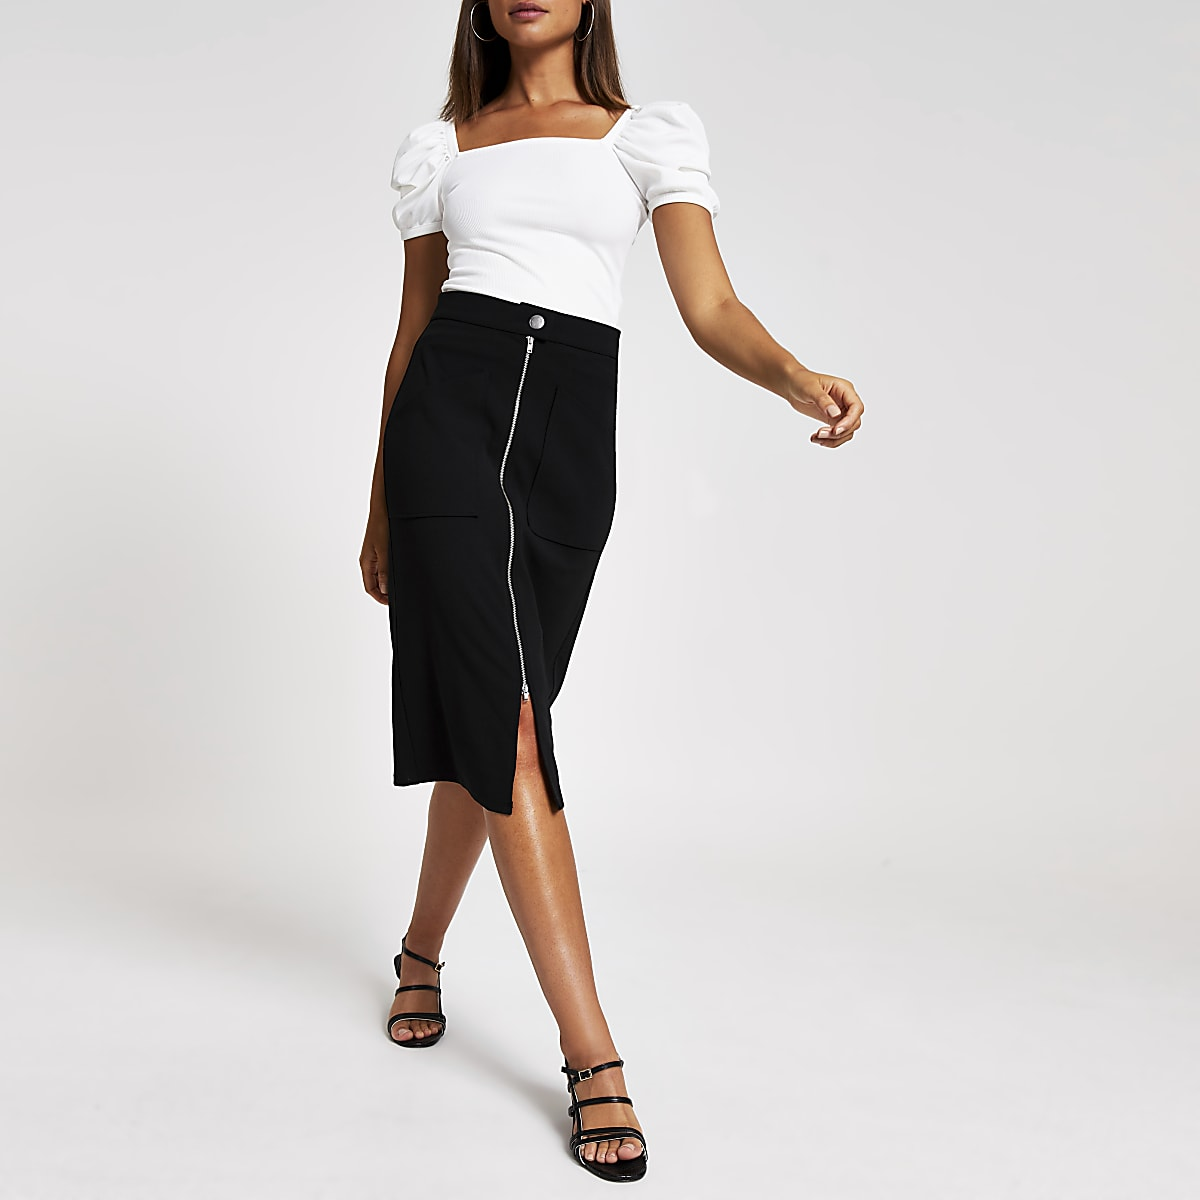 Black zip through pencil skirt